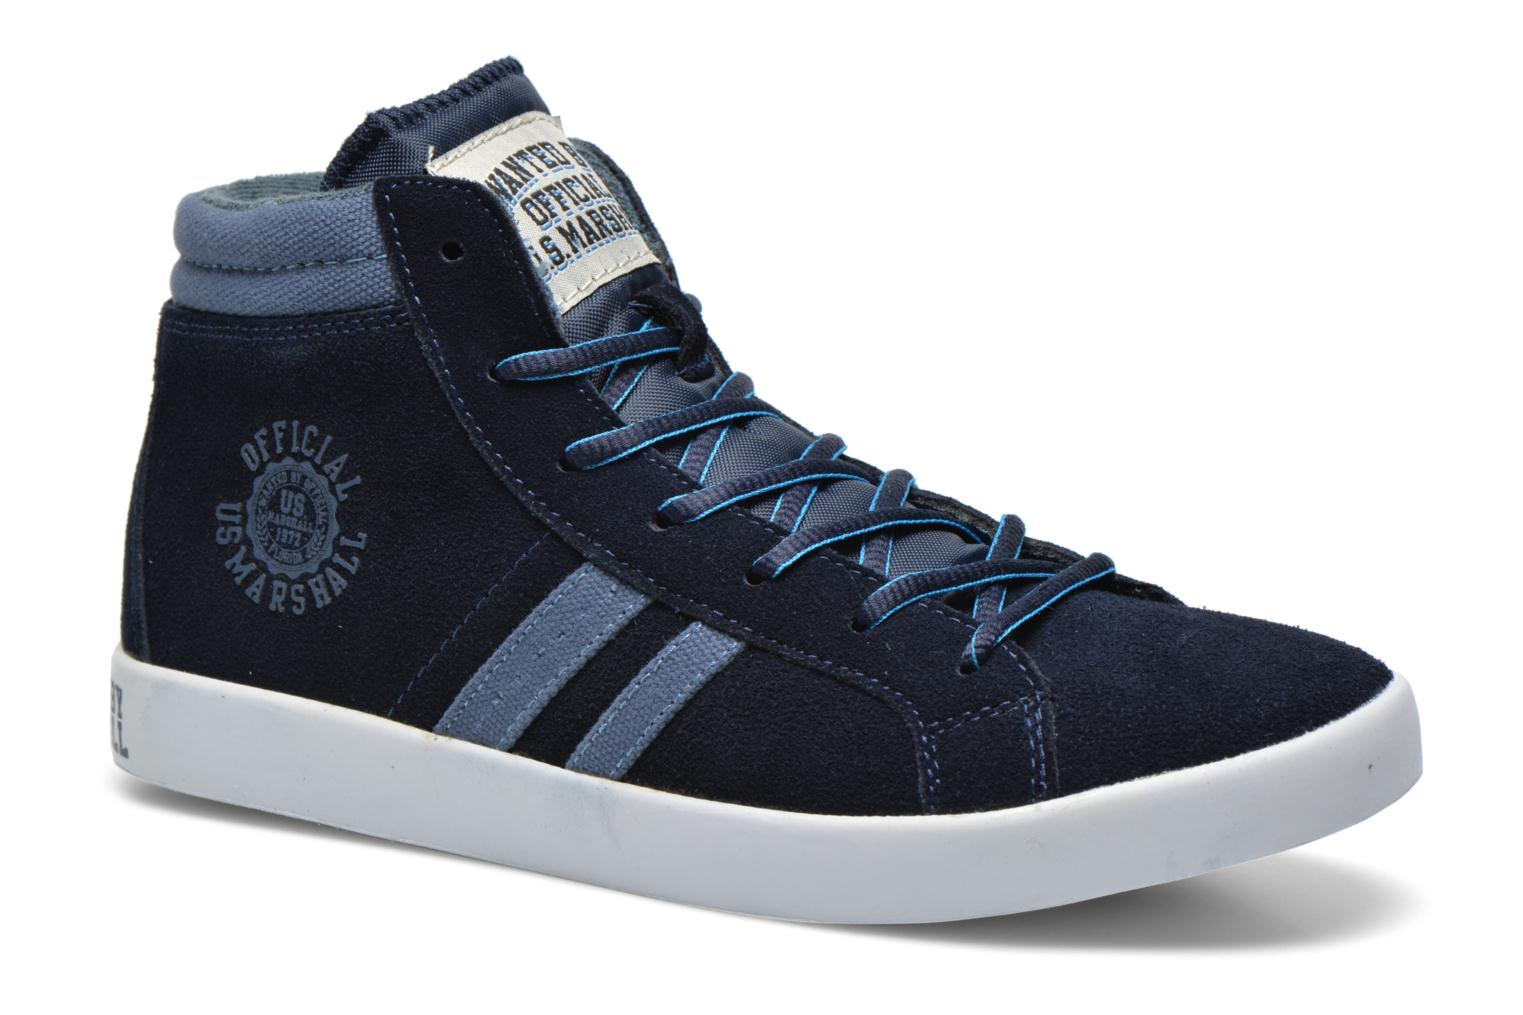 Sneakers Dofin M by US Marshall